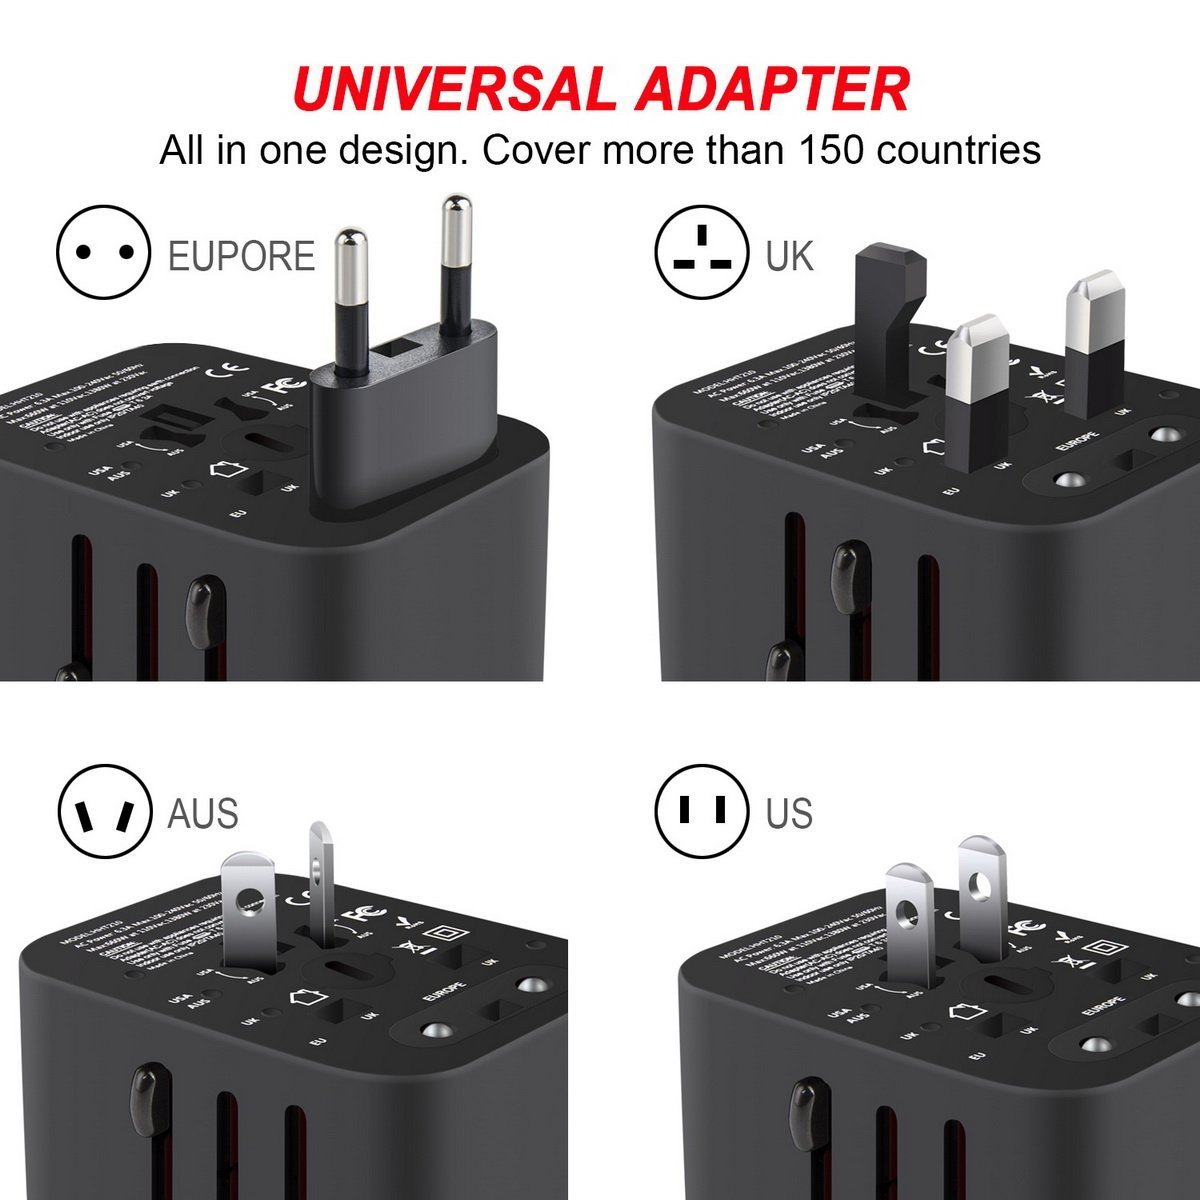 International Travel Adapter, Worldwide Travel Charger with 4 USB Ports Power Converters for EU, UK, US, USA, AU, Europe & Asia, All-in-one Universal Wall Plug Multi-Outlets Electrical Adaptor - Black by YIVIEW (Image #2)